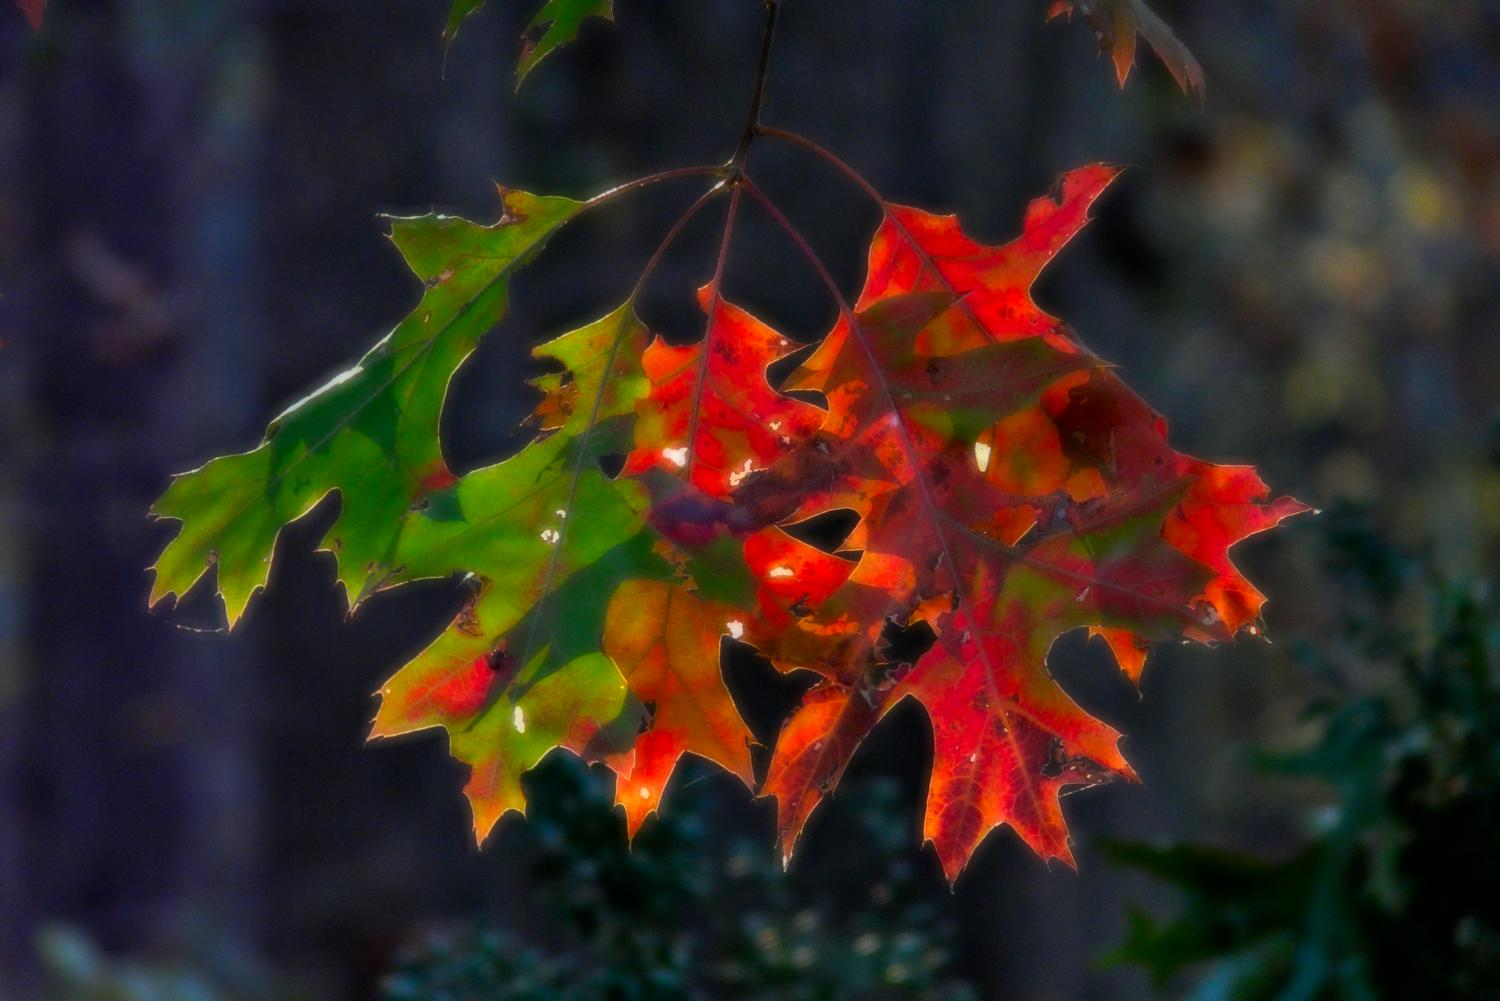 Autumn leaves - red against green - Some autumn color - Panasonic DMC-FZ18 - Tony Karp, design, art, photography, techno-impressionist, techno-impressionism, aerial photography , drone , drones , dji , mavic pro , video , 3D printing - Books -